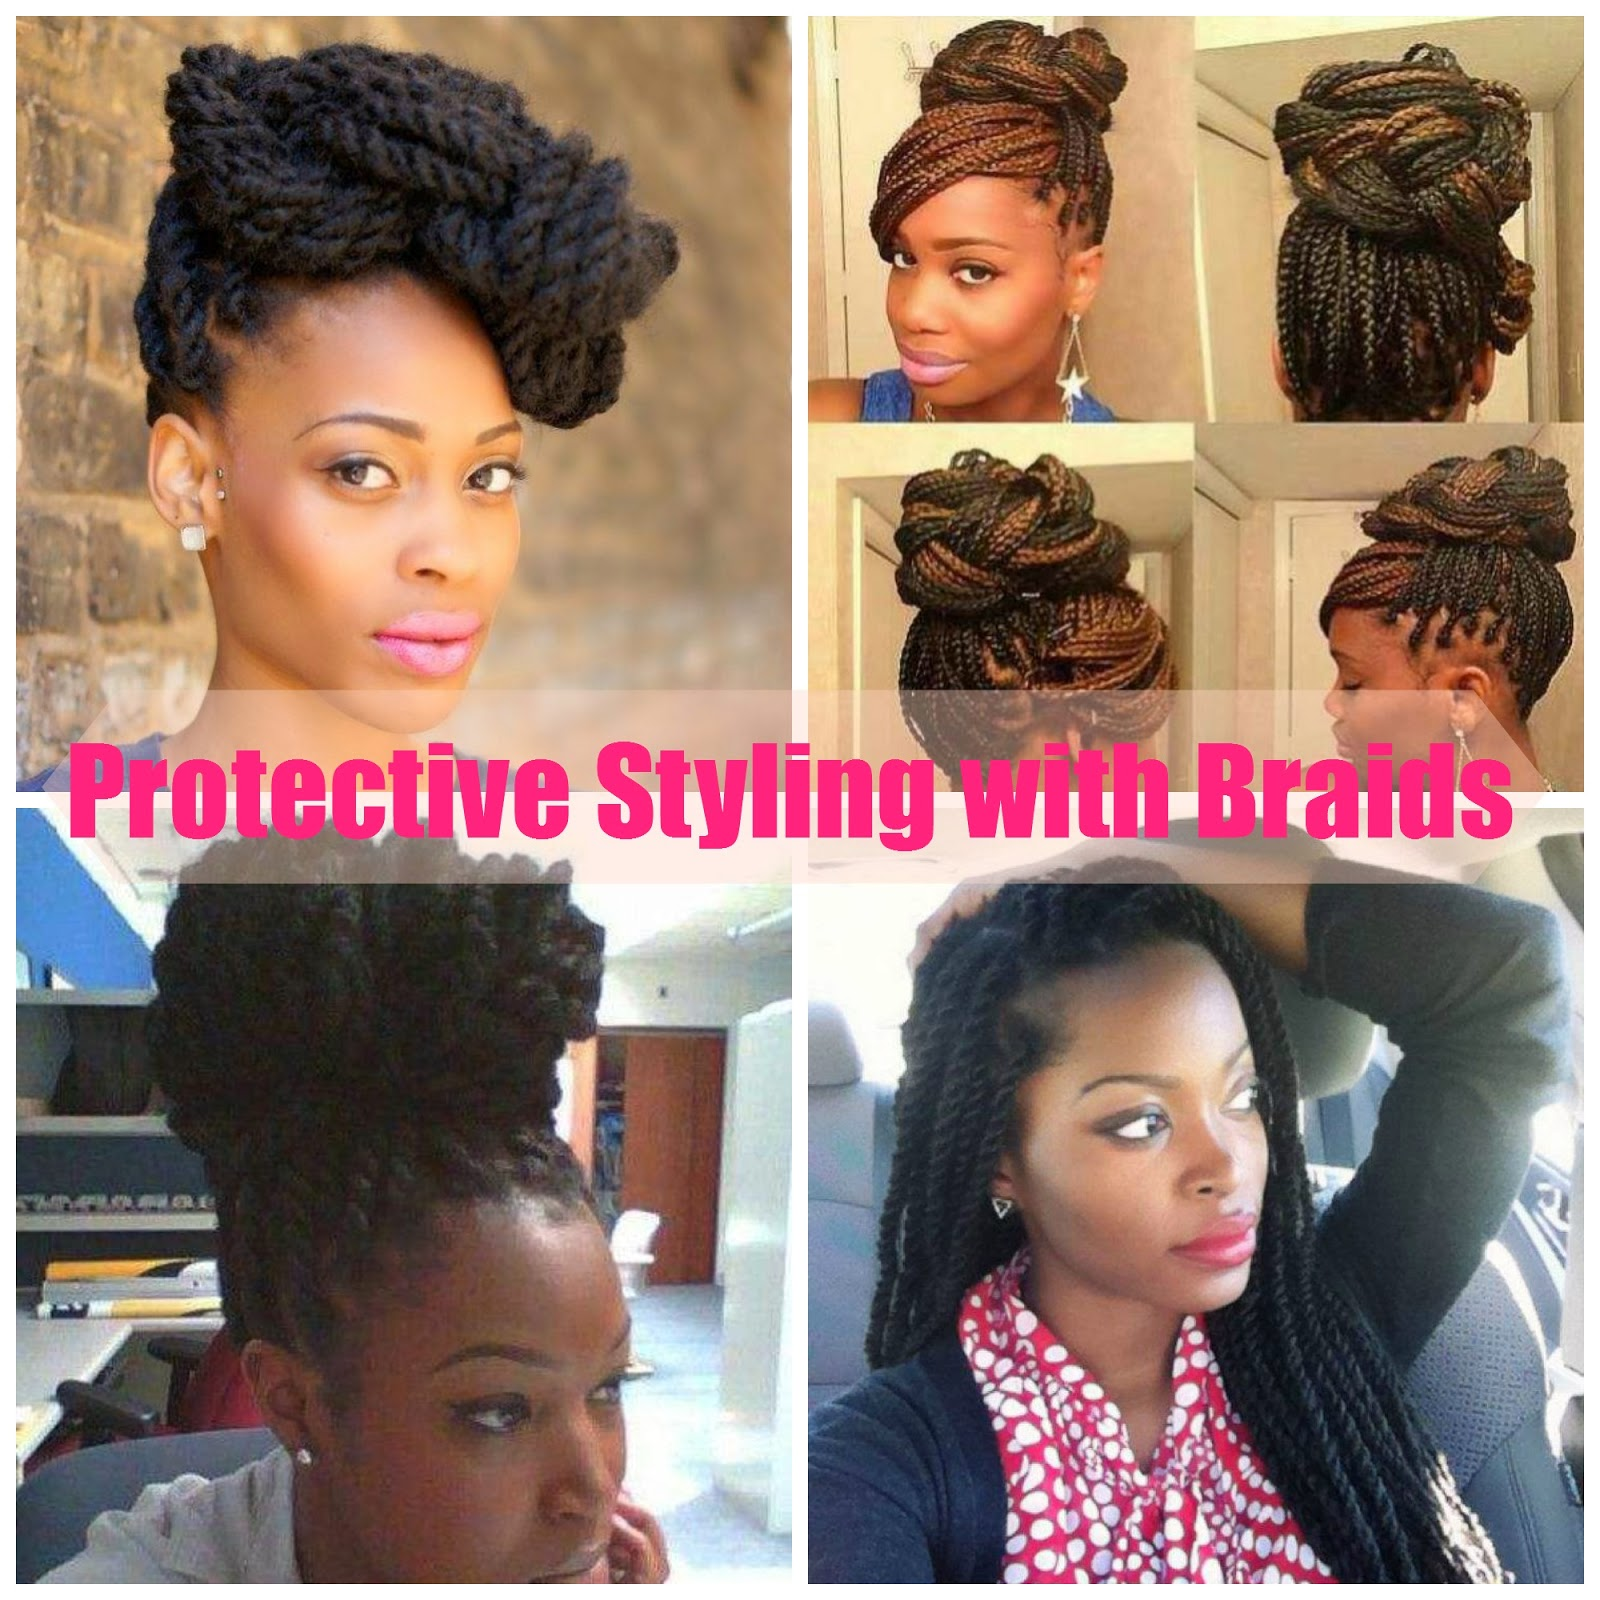 Astounding Protective Styling Natural Hair Are Your Options Limited Hairstyles For Women Draintrainus